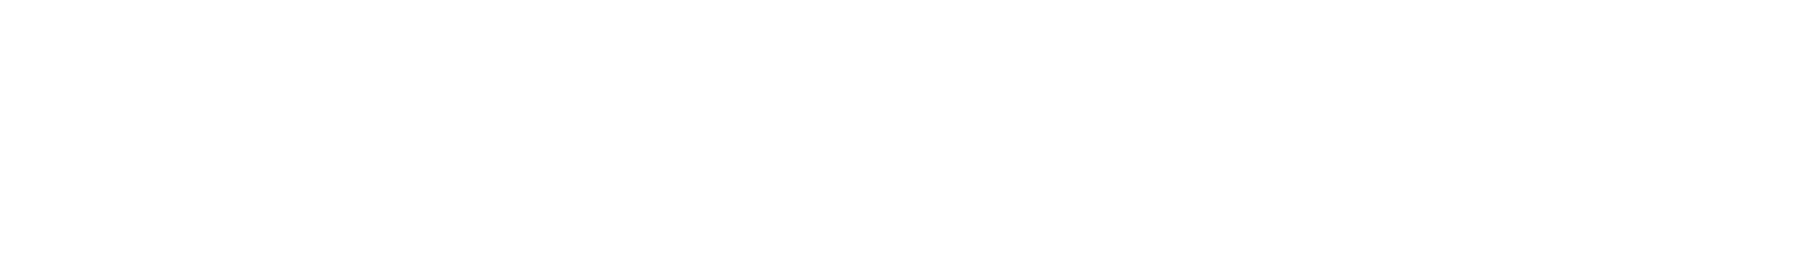 veh1 cutted sounds   047